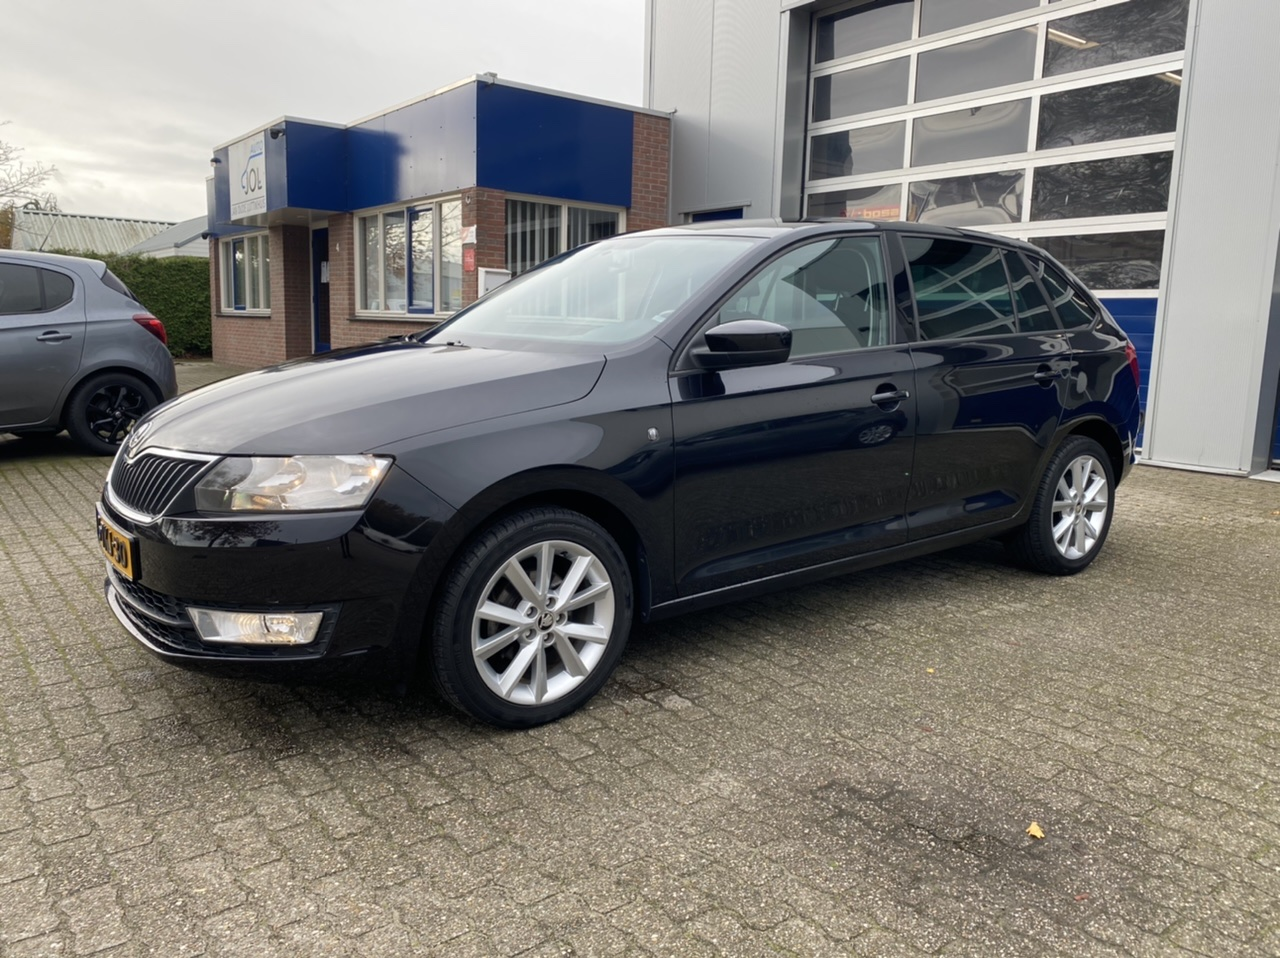 Skoda Rapid Spaceback 1.2 TSI 85PK Greentech Ambition Bus. Pro - 1e eigenaar